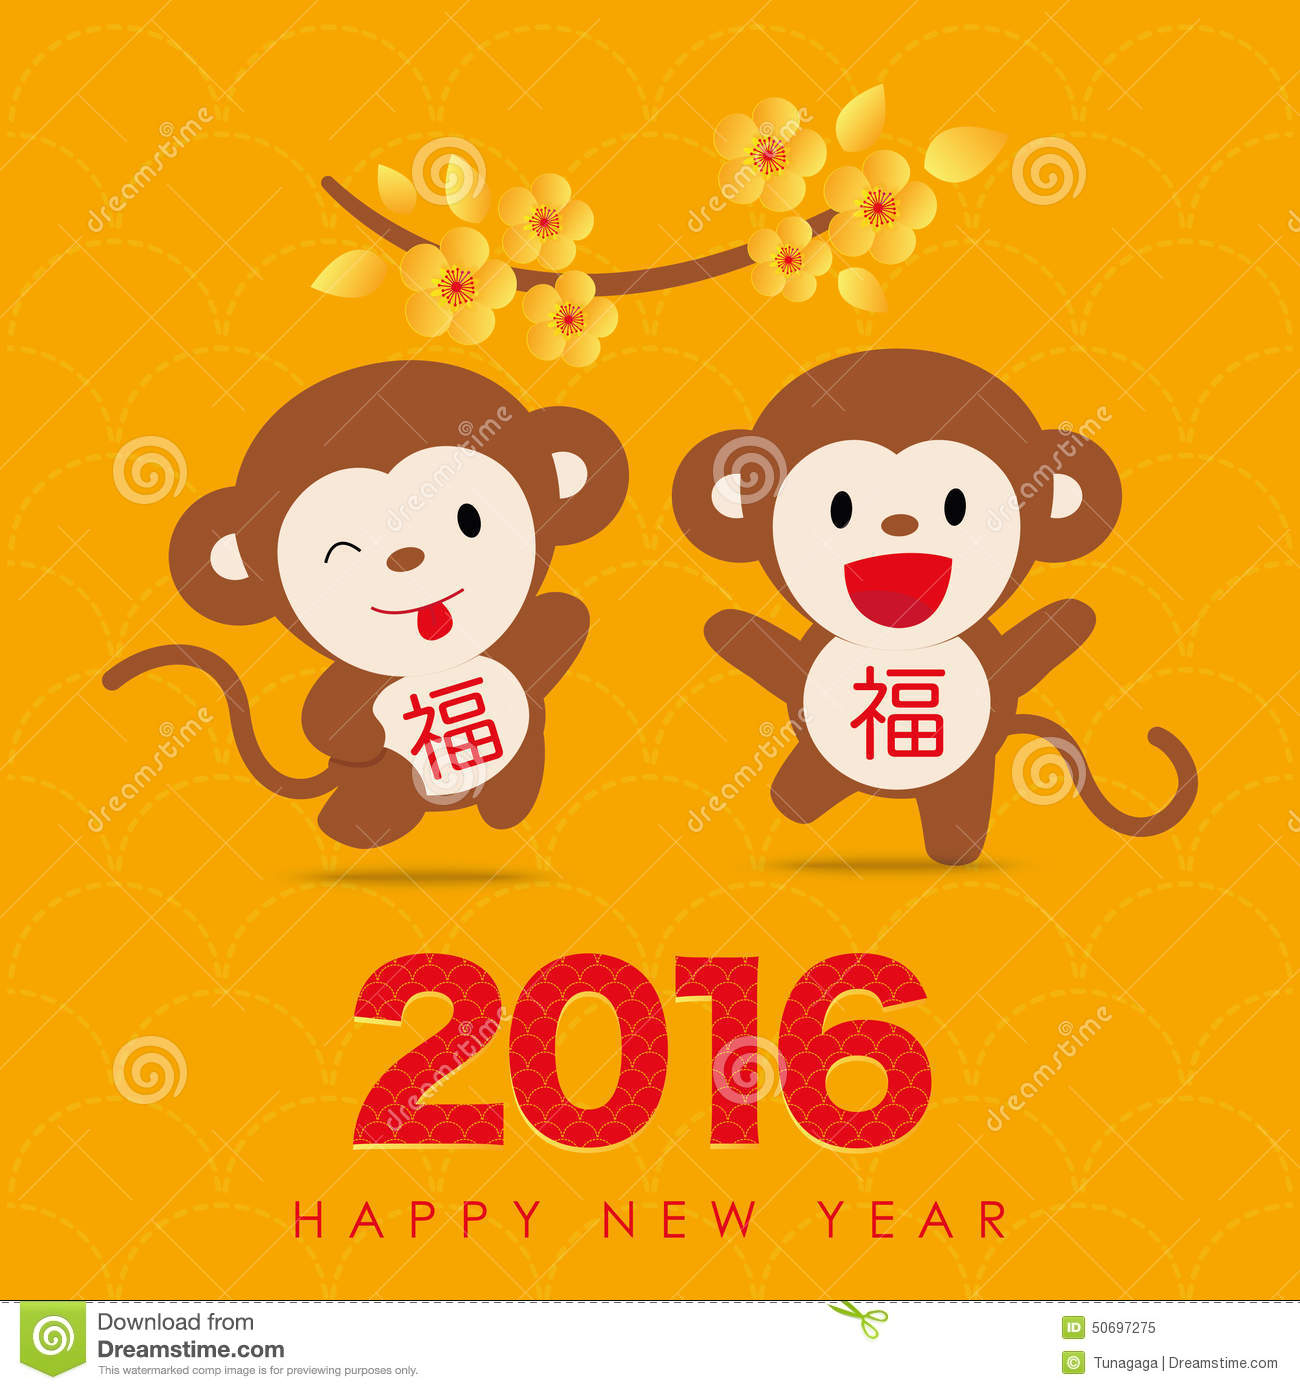 2016 monkey chinese new year - greeting card design stock vector